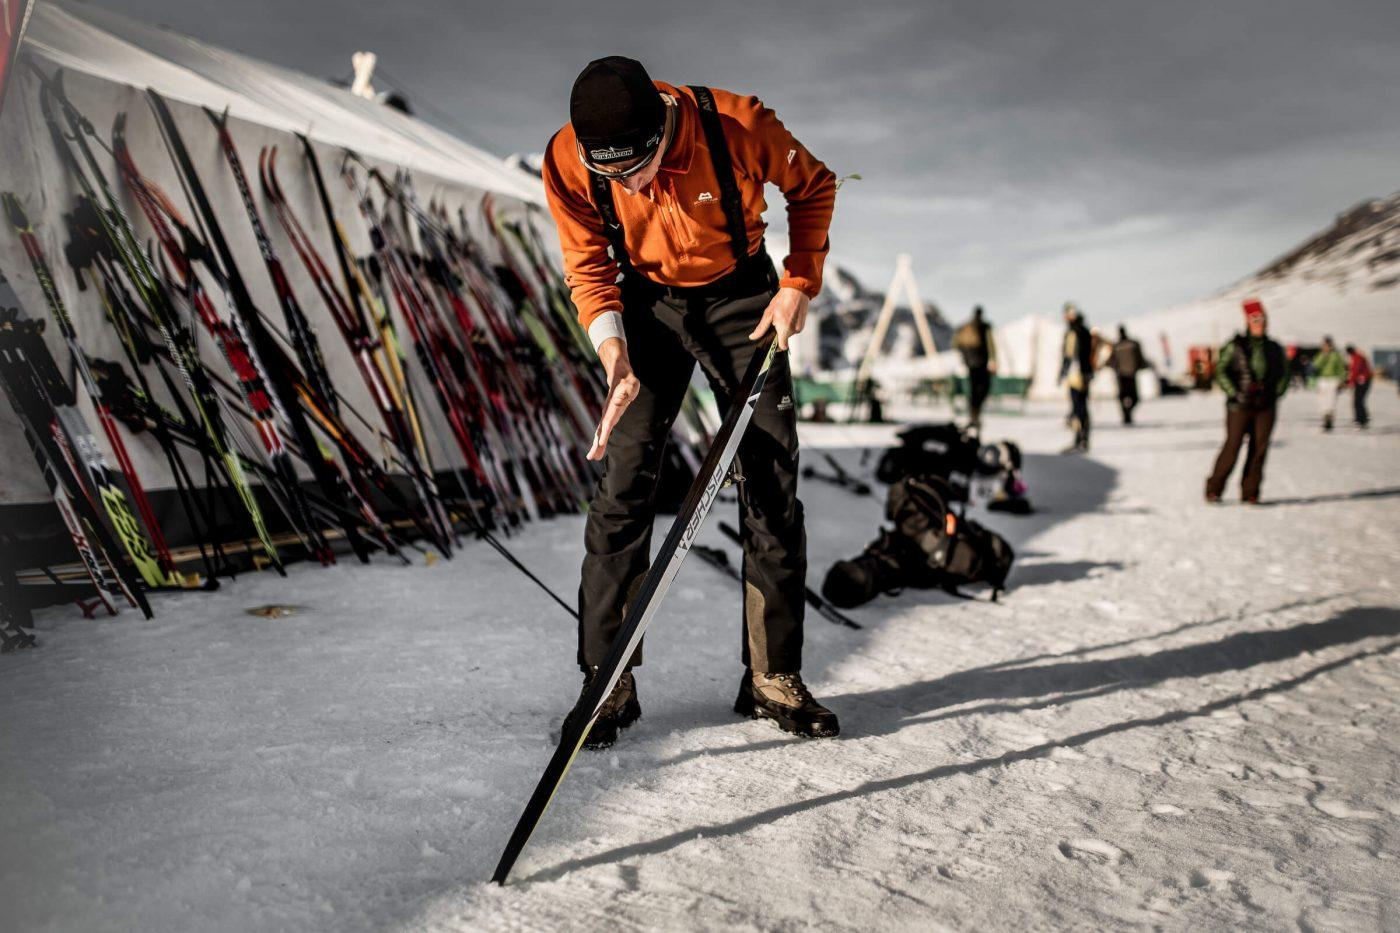 A skier in the Arctic Circle Race camp preparing his skis. Photo by Mas Pihl, Visit Greenland